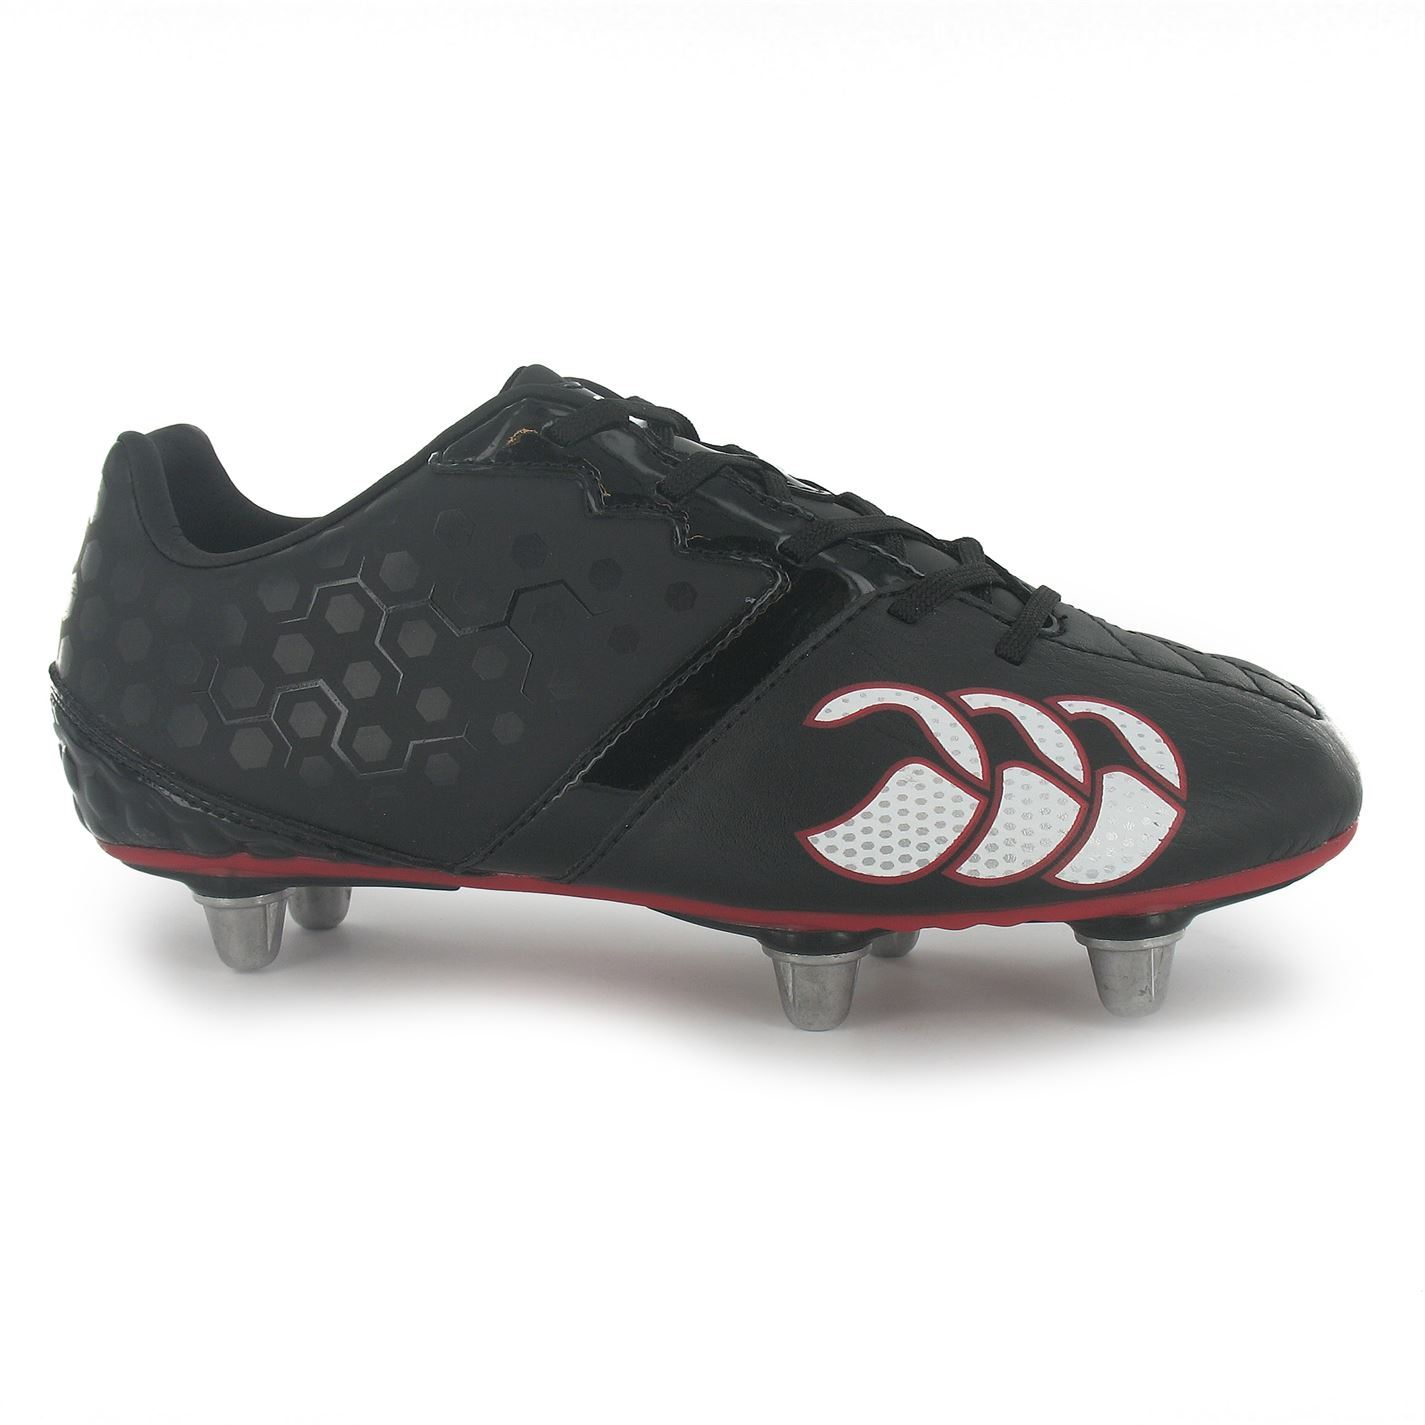 World Rugby Shop is the world's leading destination for official rugby gear and apparel. Canterbury Boots - Shop Rugby Boots from Canterbury [TopBarStoreLogoEspot].